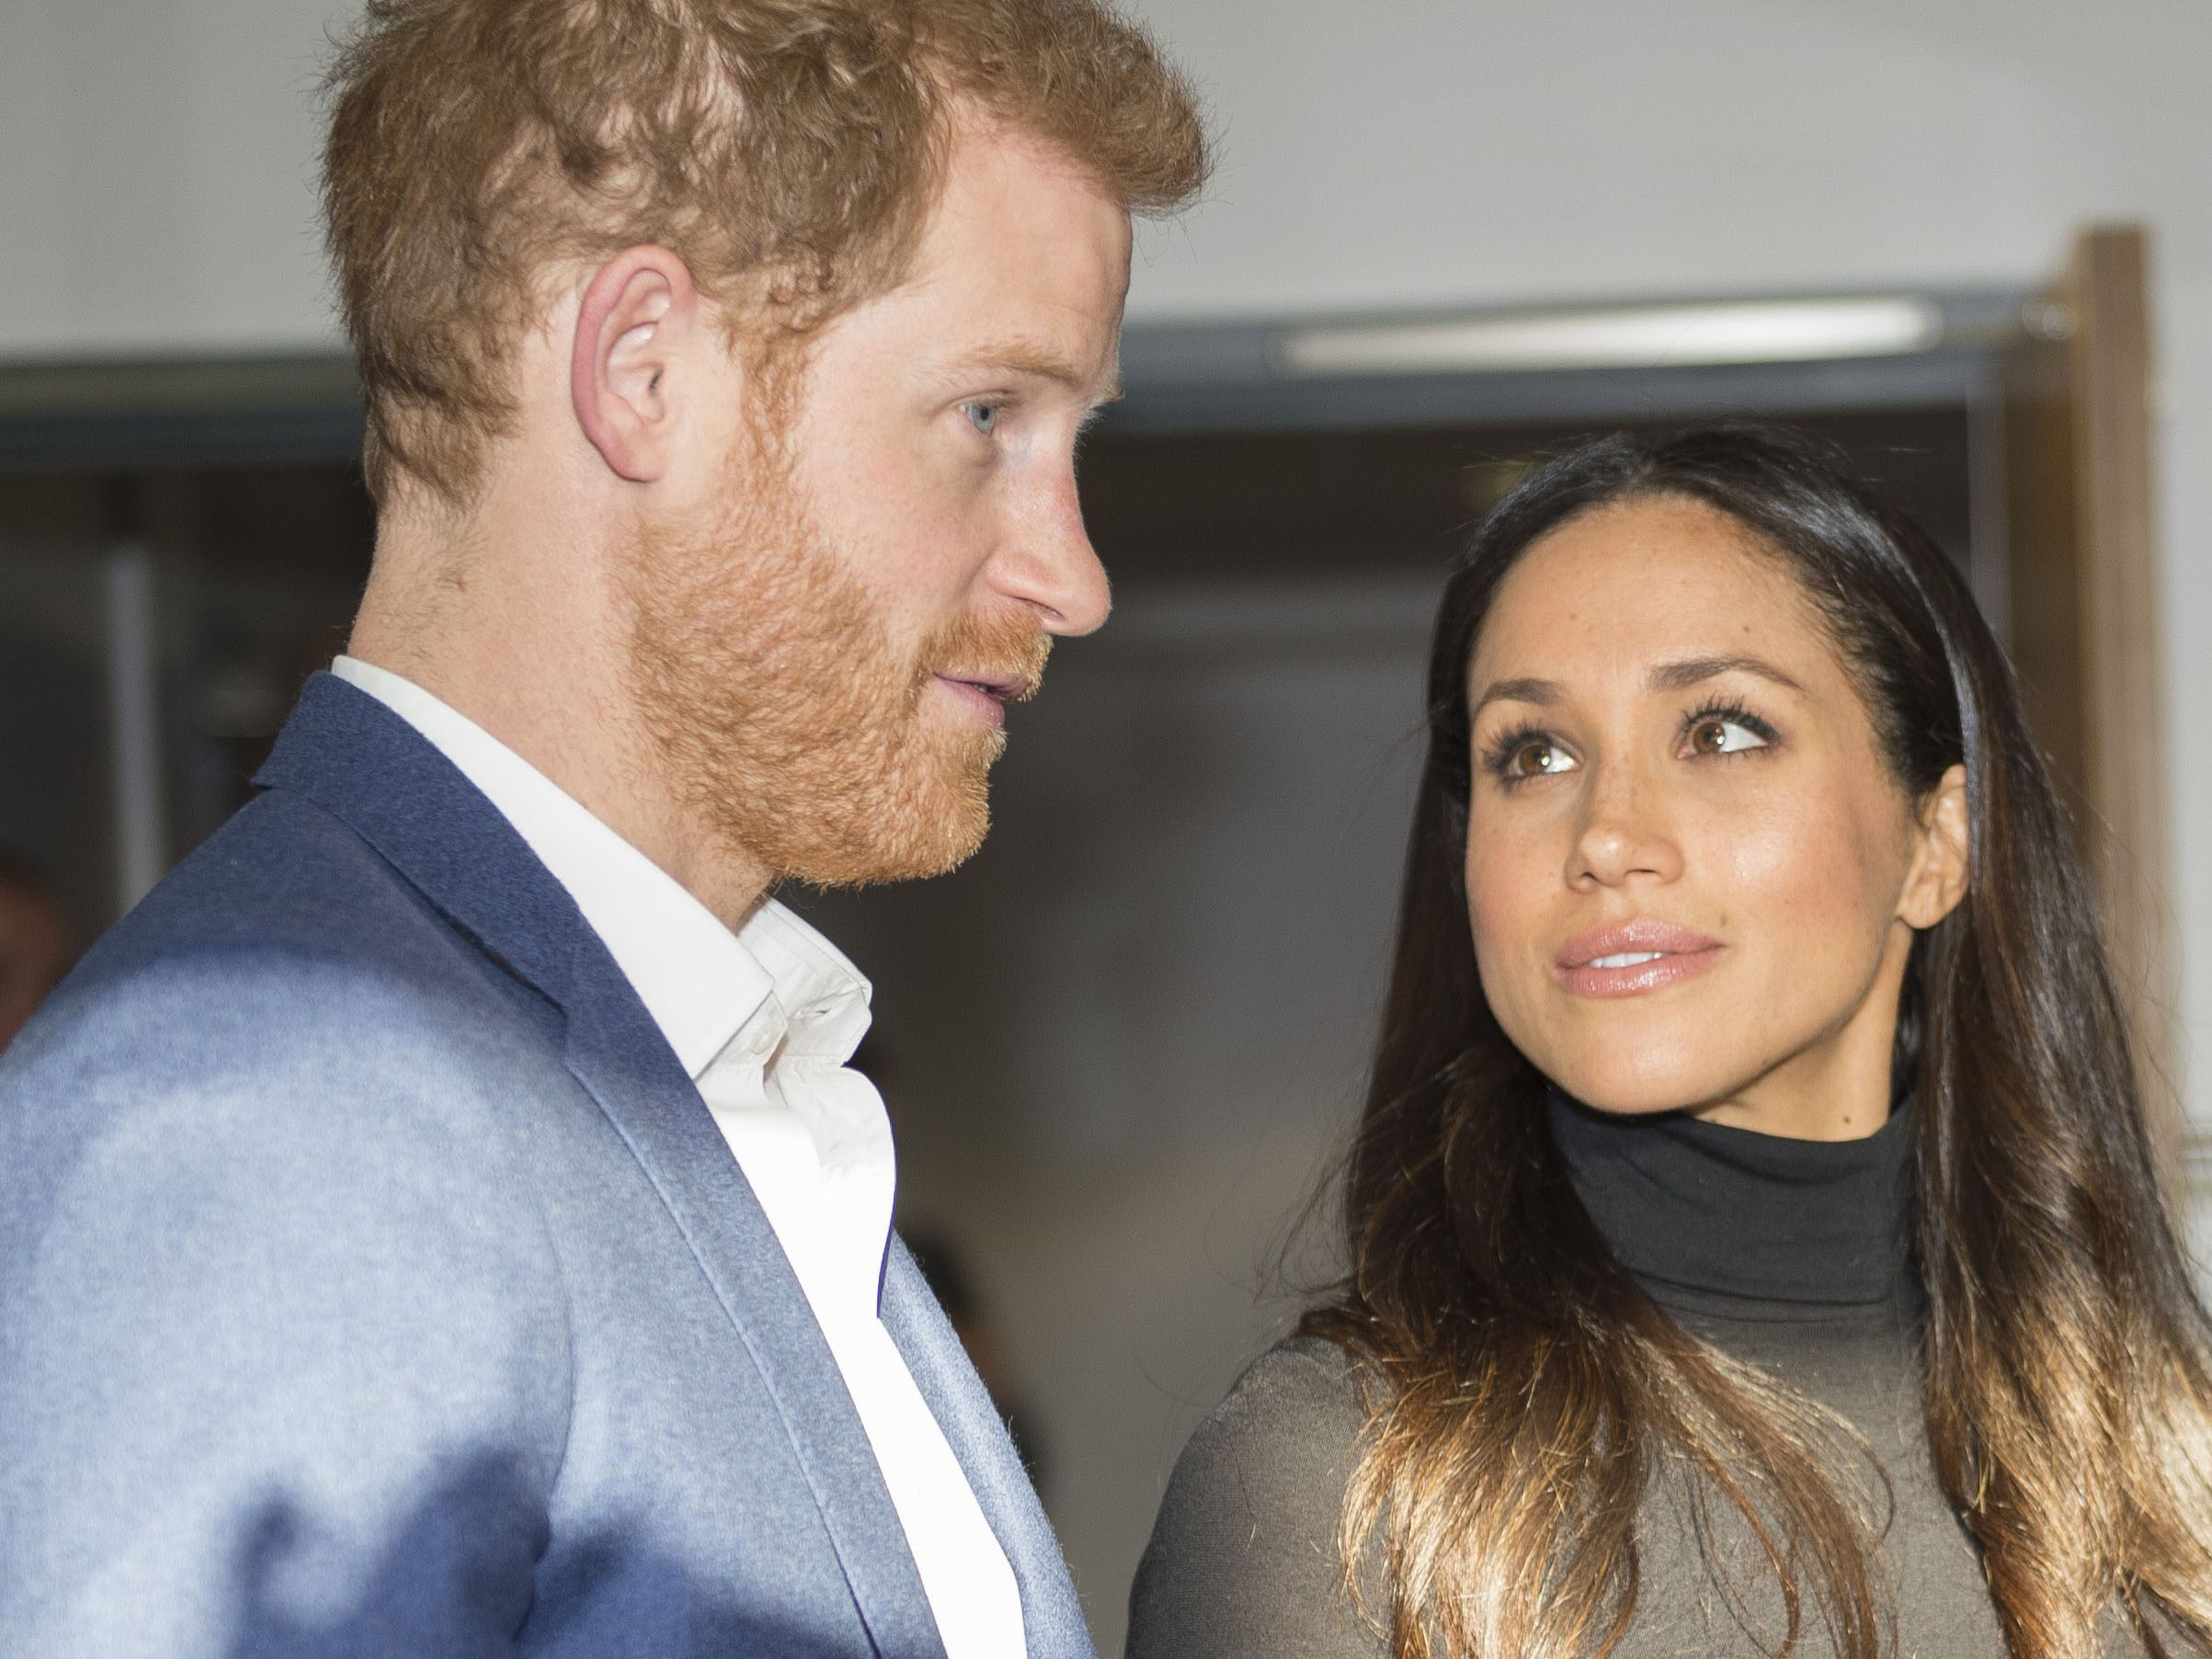 Discussion on this topic: Royal fans think Prince Harry looks just , royal-fans-think-prince-harry-looks-just/